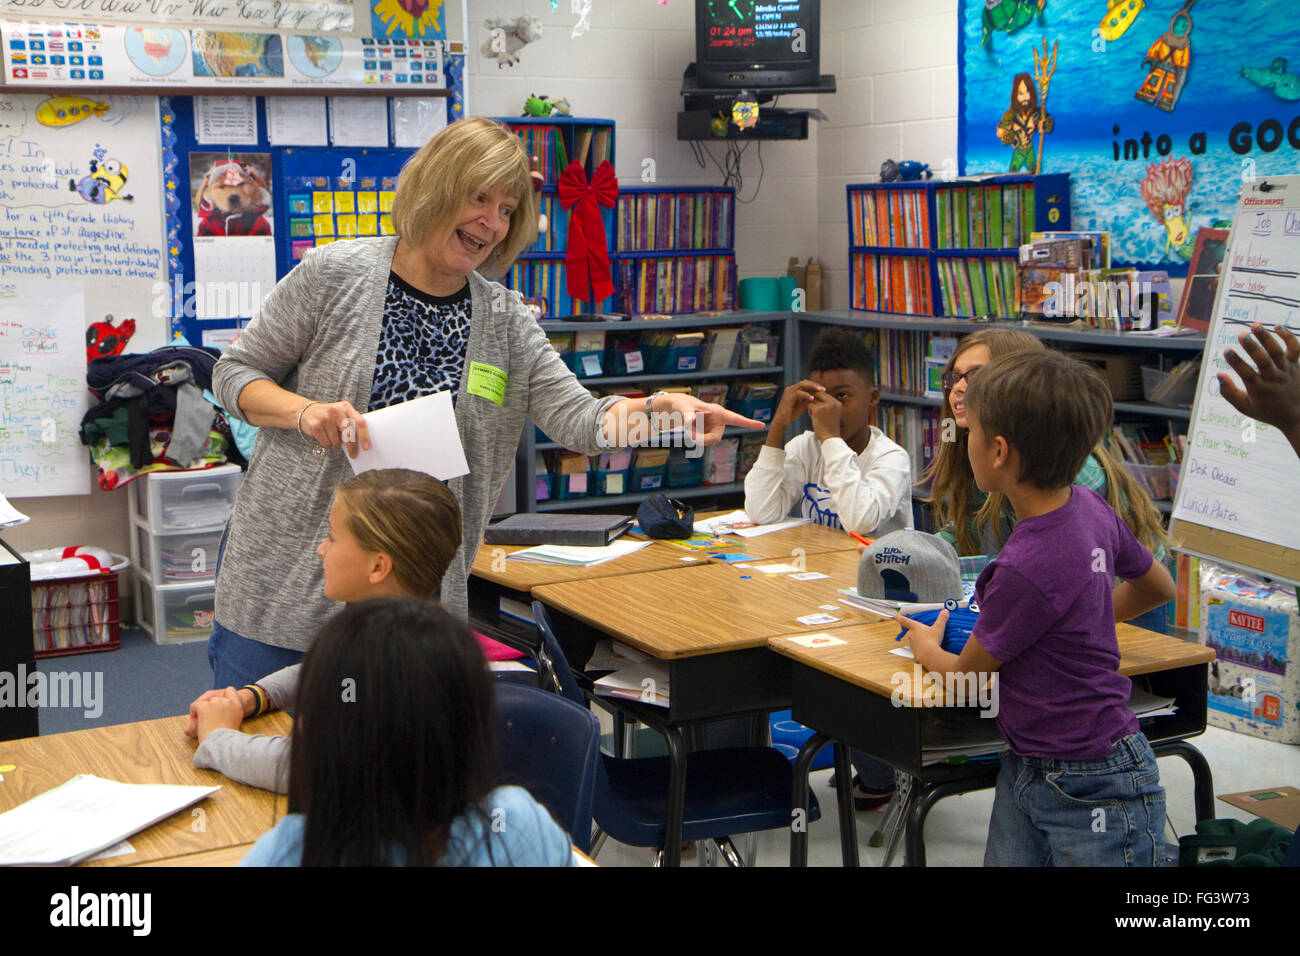 Teacher in fourth grade classroom with students, USA. - Stock Image